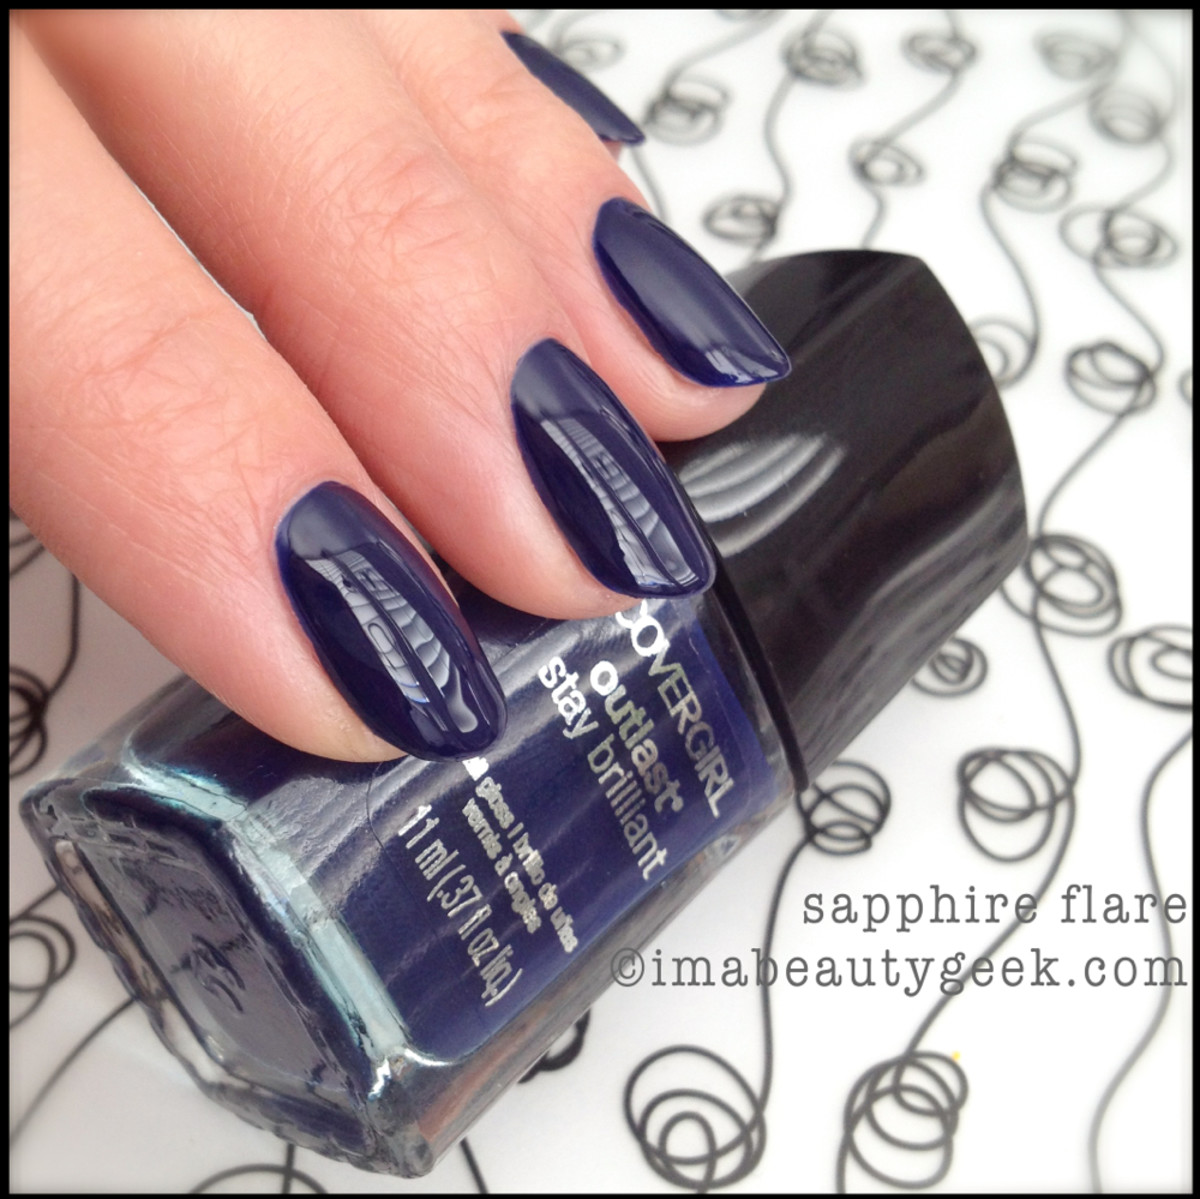 Covergirl Polish Sapphire Flare Spring 2014